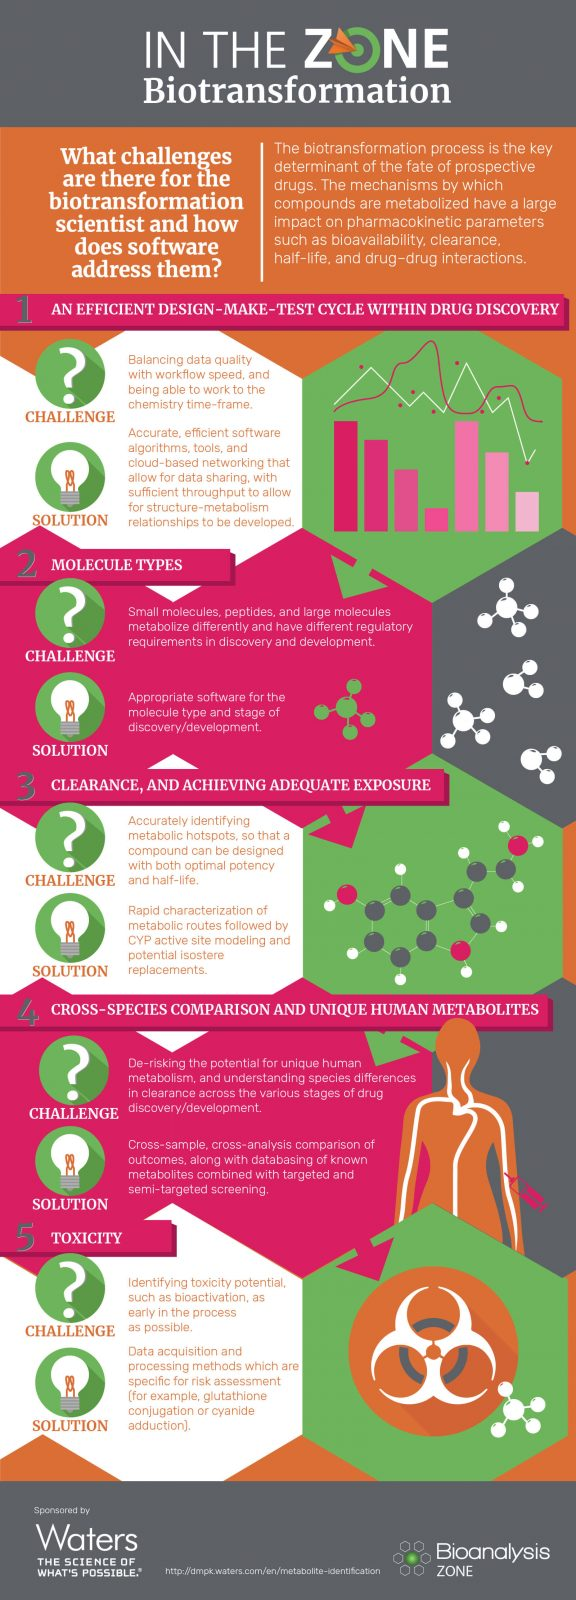 Biotransformation infographic_SMALL-01